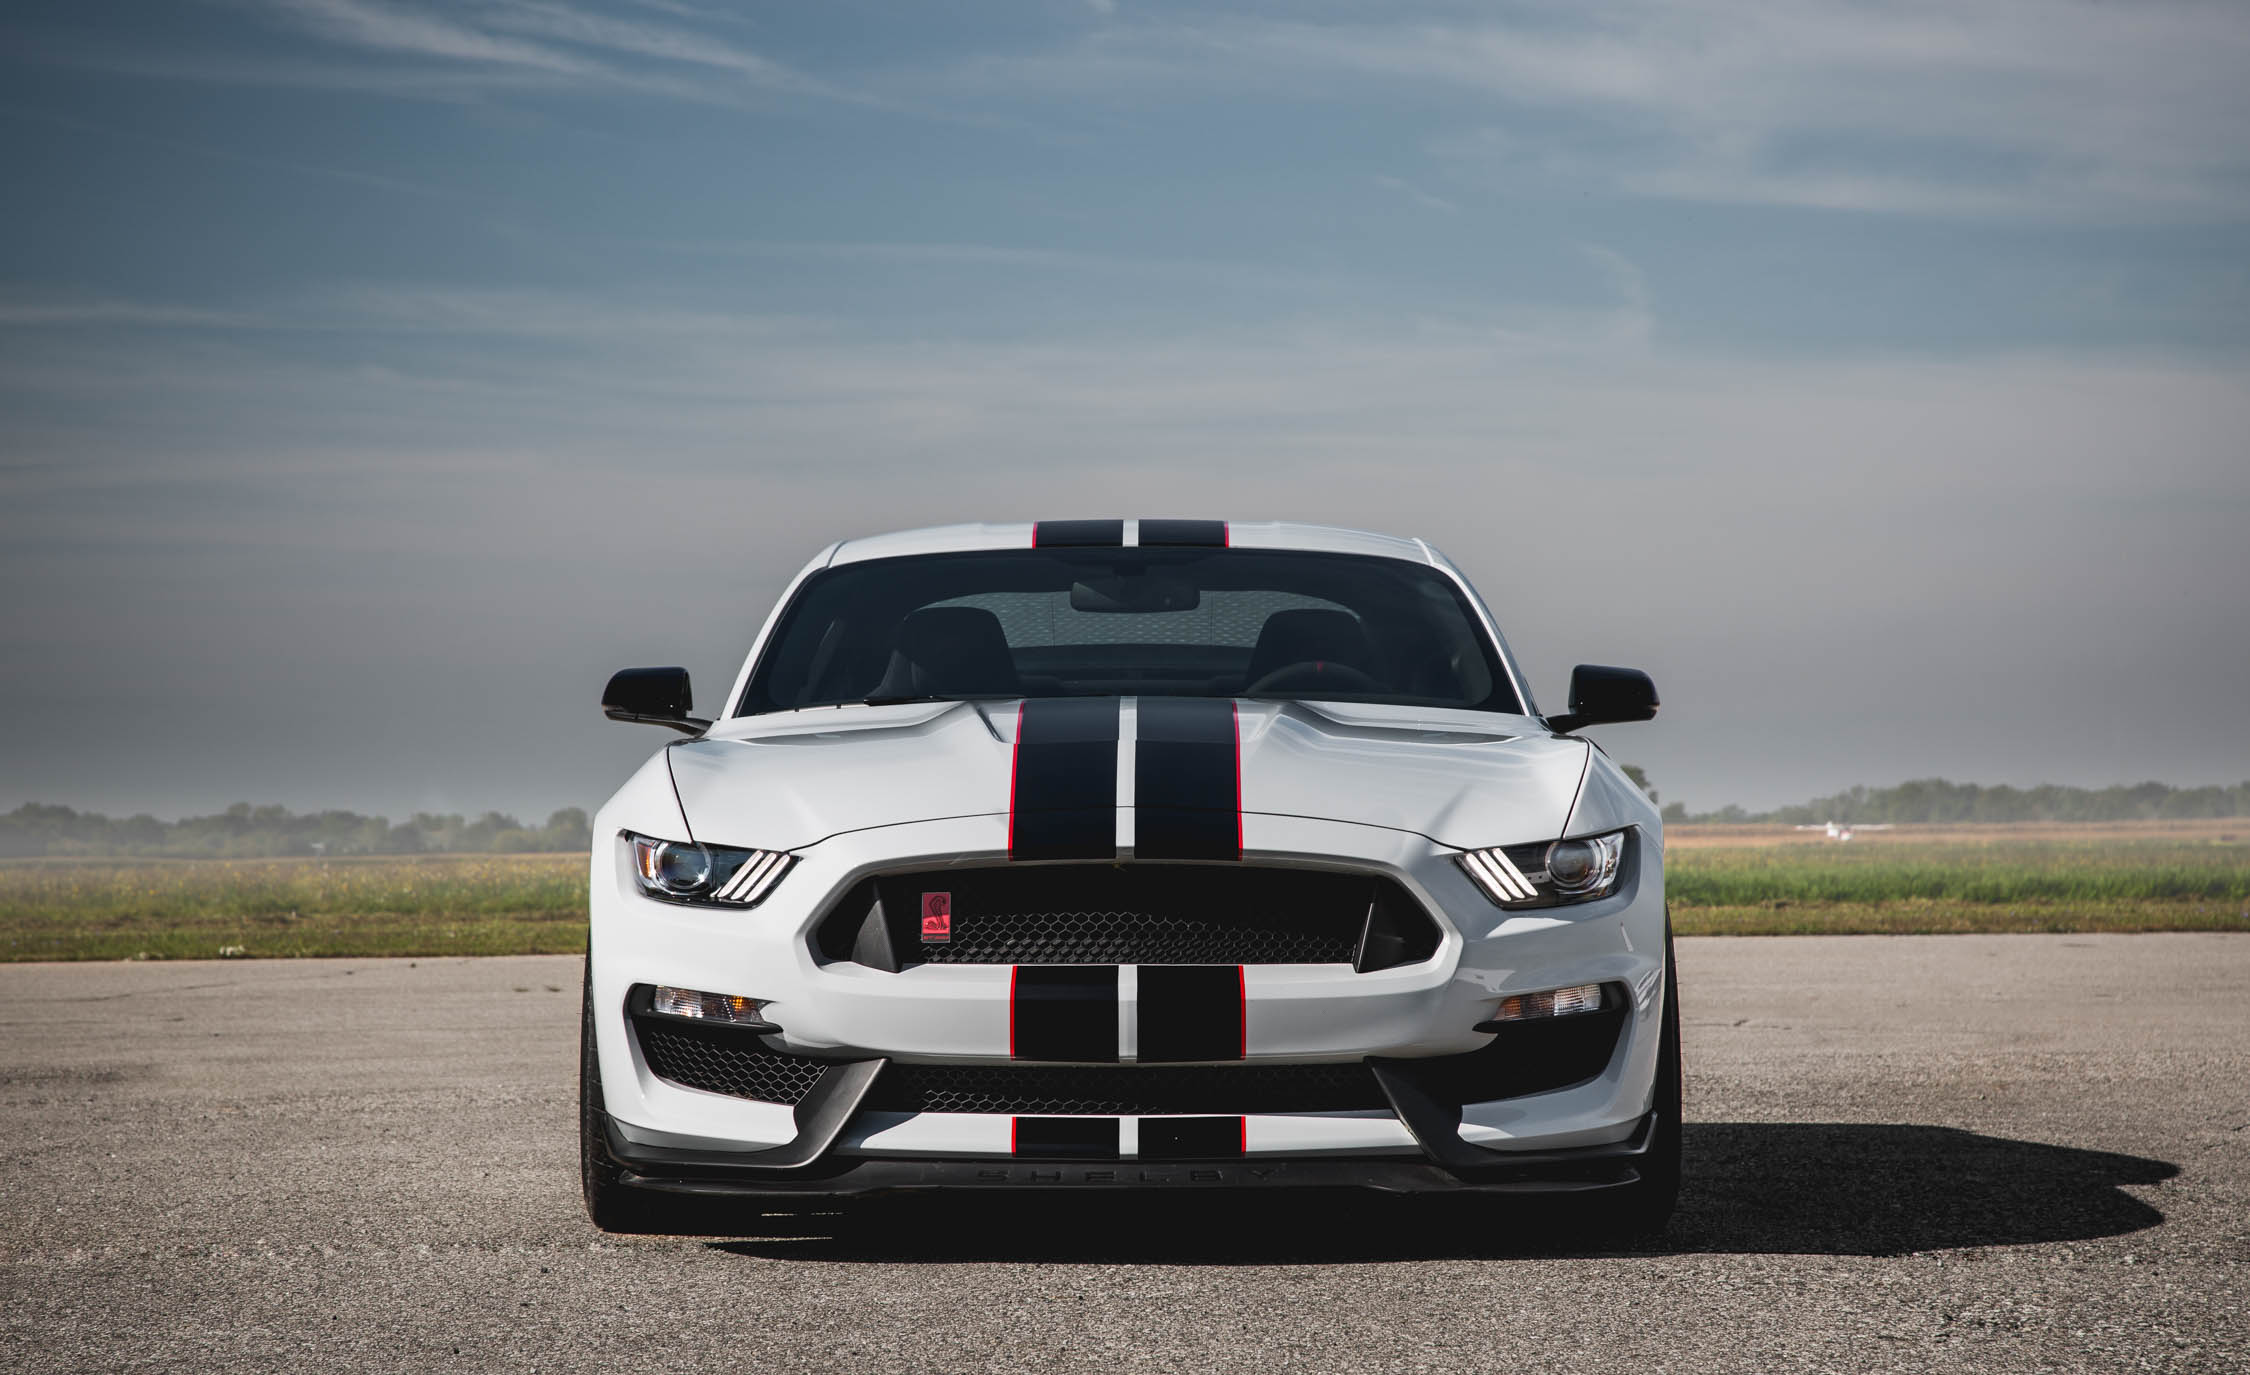 2018 Mustang Gt Pricing >> 2016 Ford Mustang Shelby GT350R | Car Wallpaper